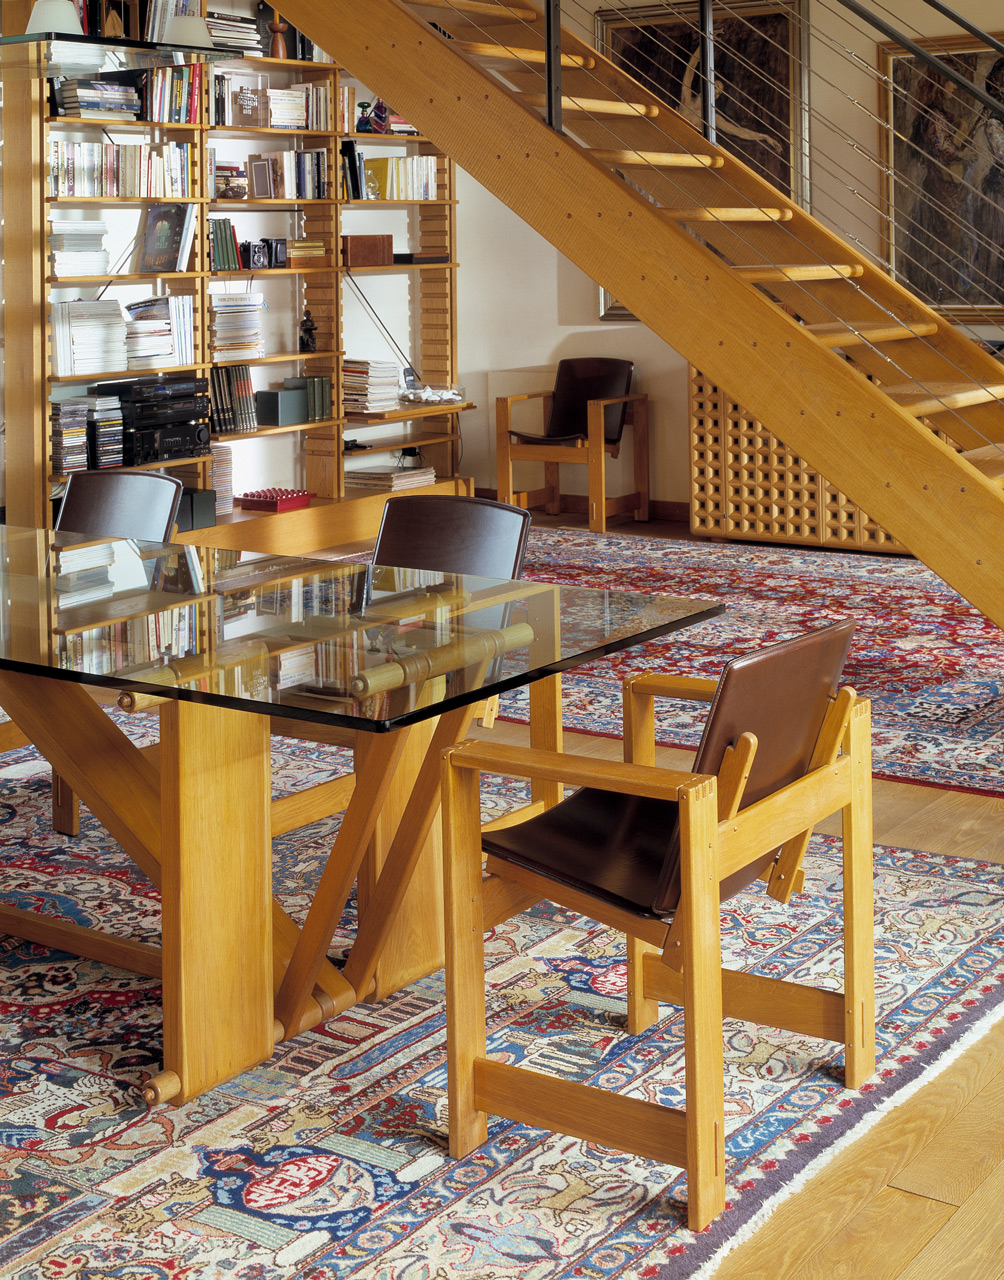 Lombardo table in oak with glass top. San Marco armchairs in oak with leather seats. Bespoke staircase in oak.